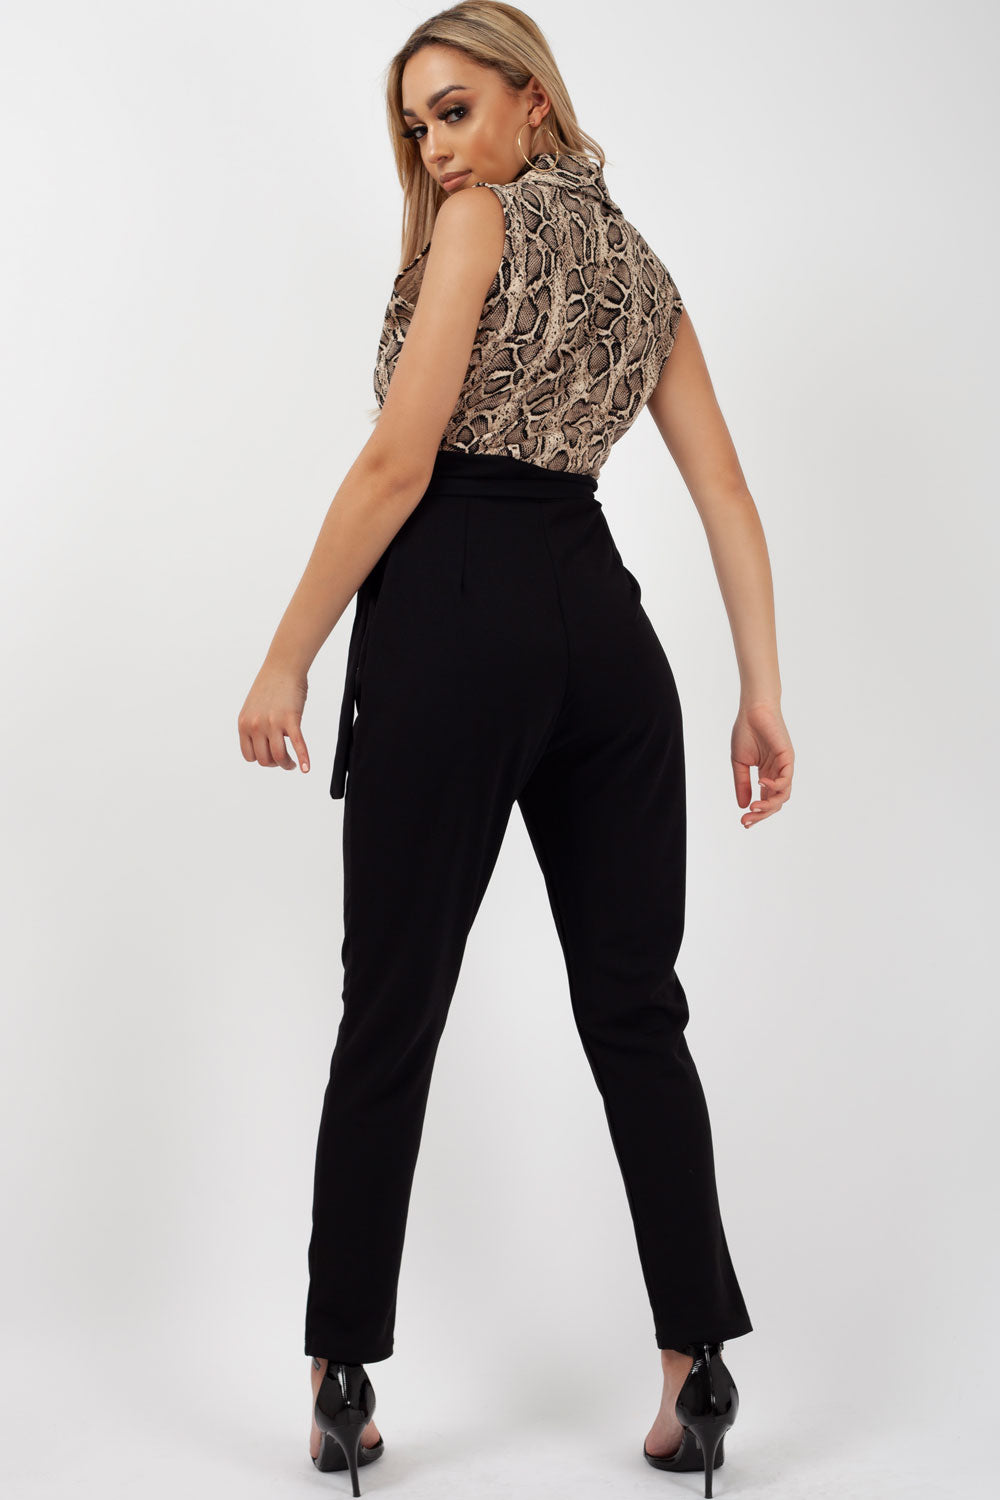 going out party jumpsuit uk